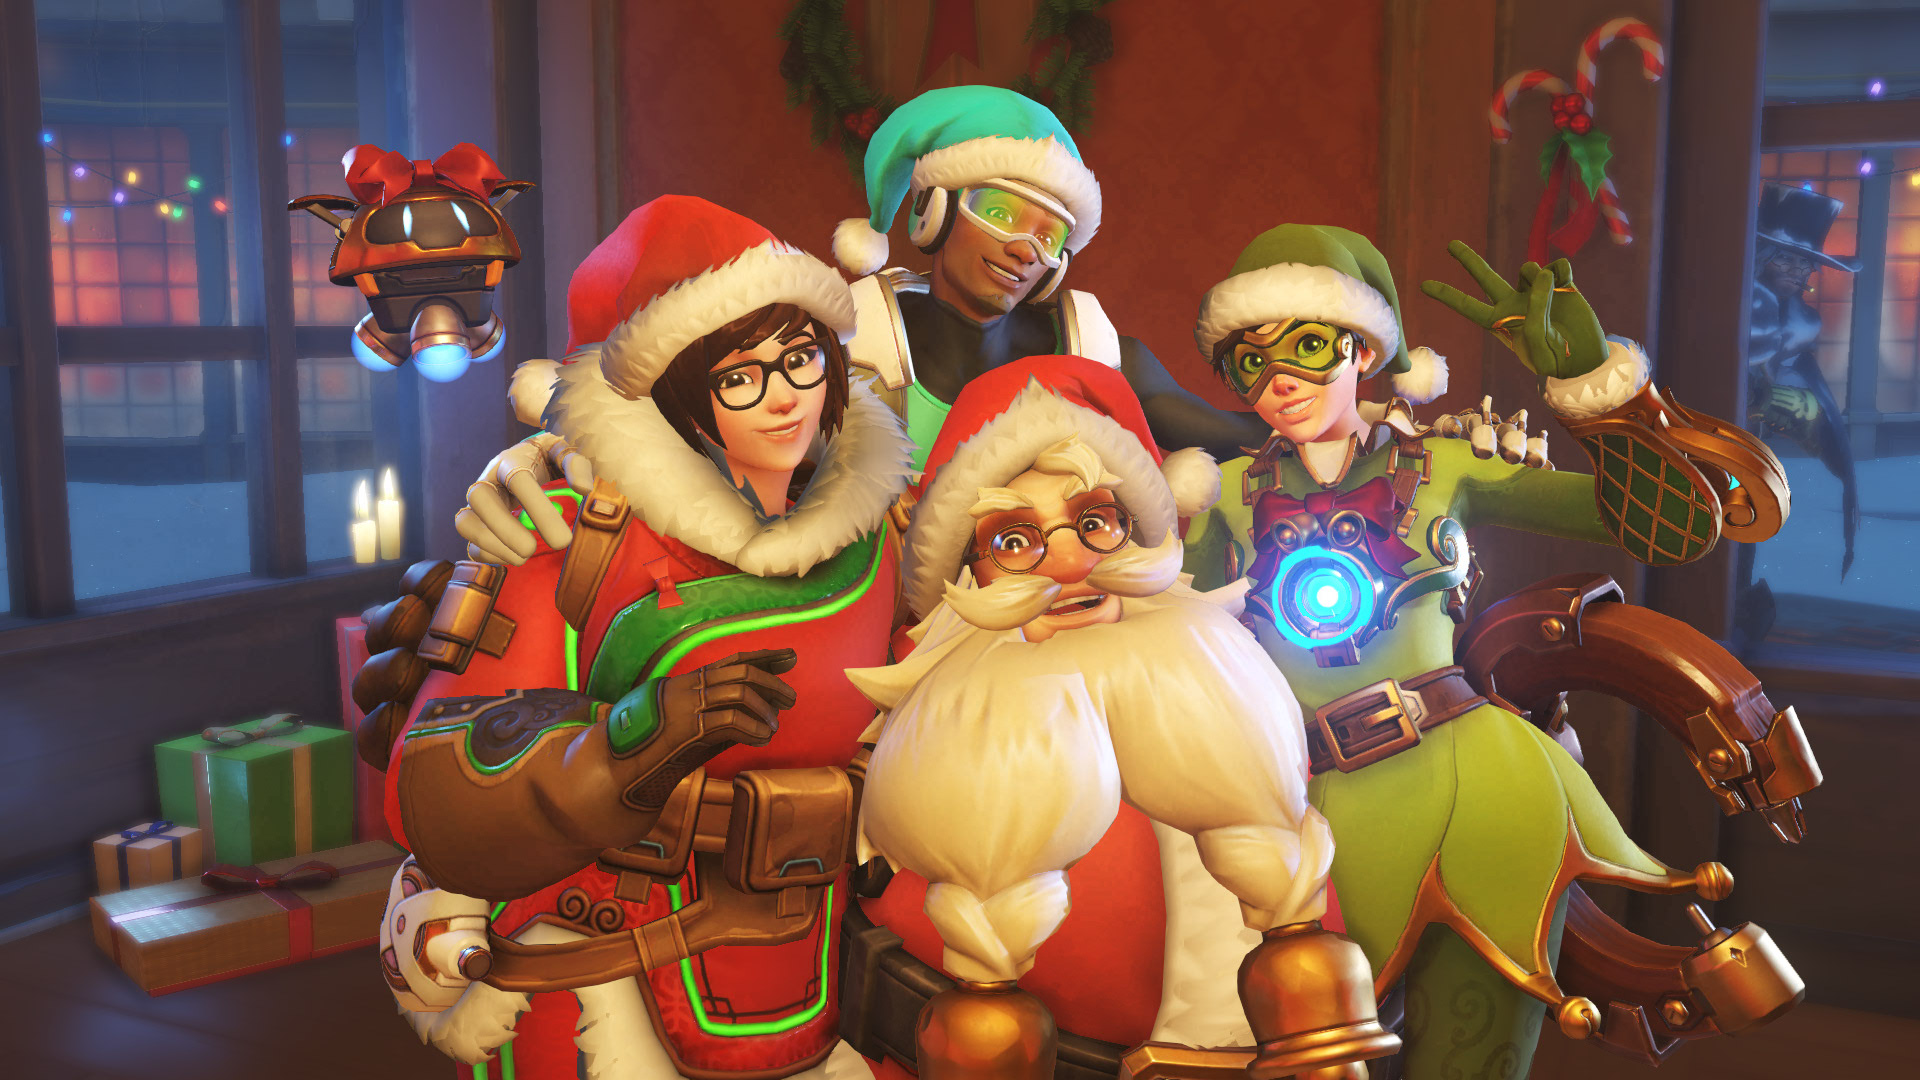 Overwatch Winter Wonderland 2016 Holiday Collection - All Skins, Emotes, Victory Poses and Voice Lines